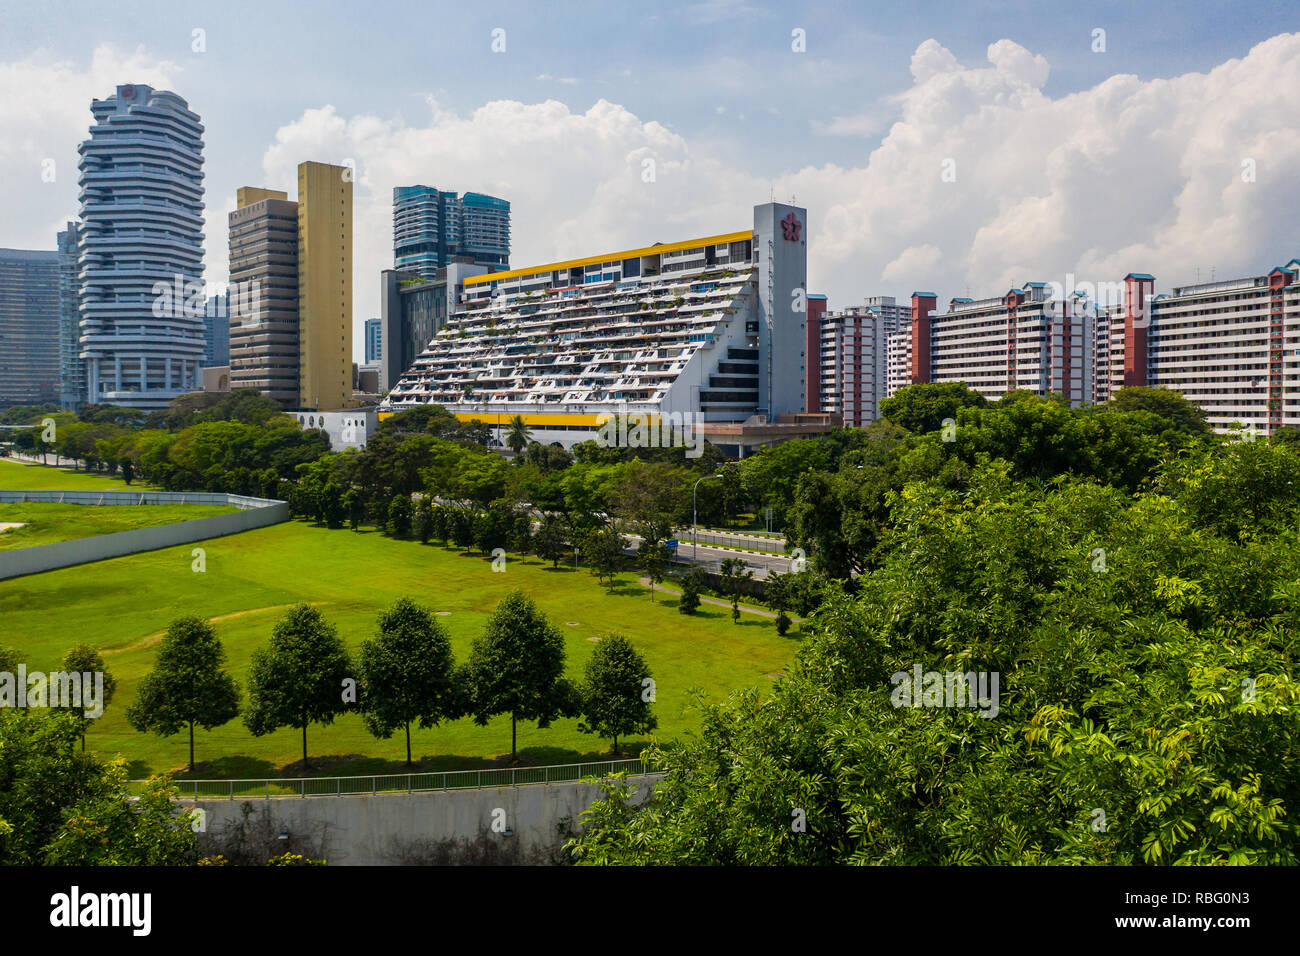 Aerial view of the brutalist design of Golden Mile Complex, Singapore. - Stock Image